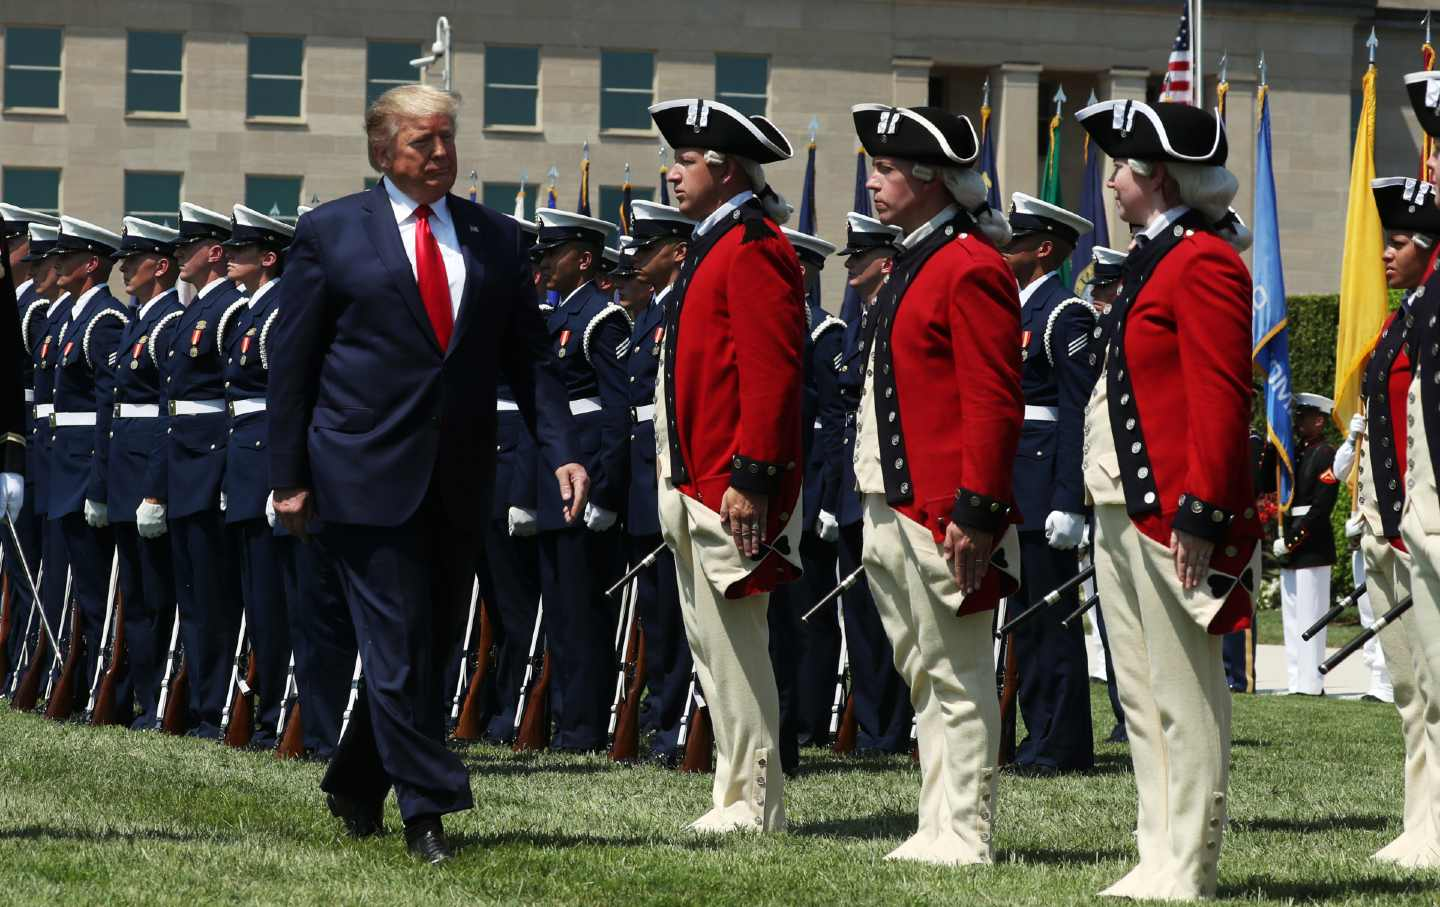 Donald Trump walks past a row of troops in full uniform.